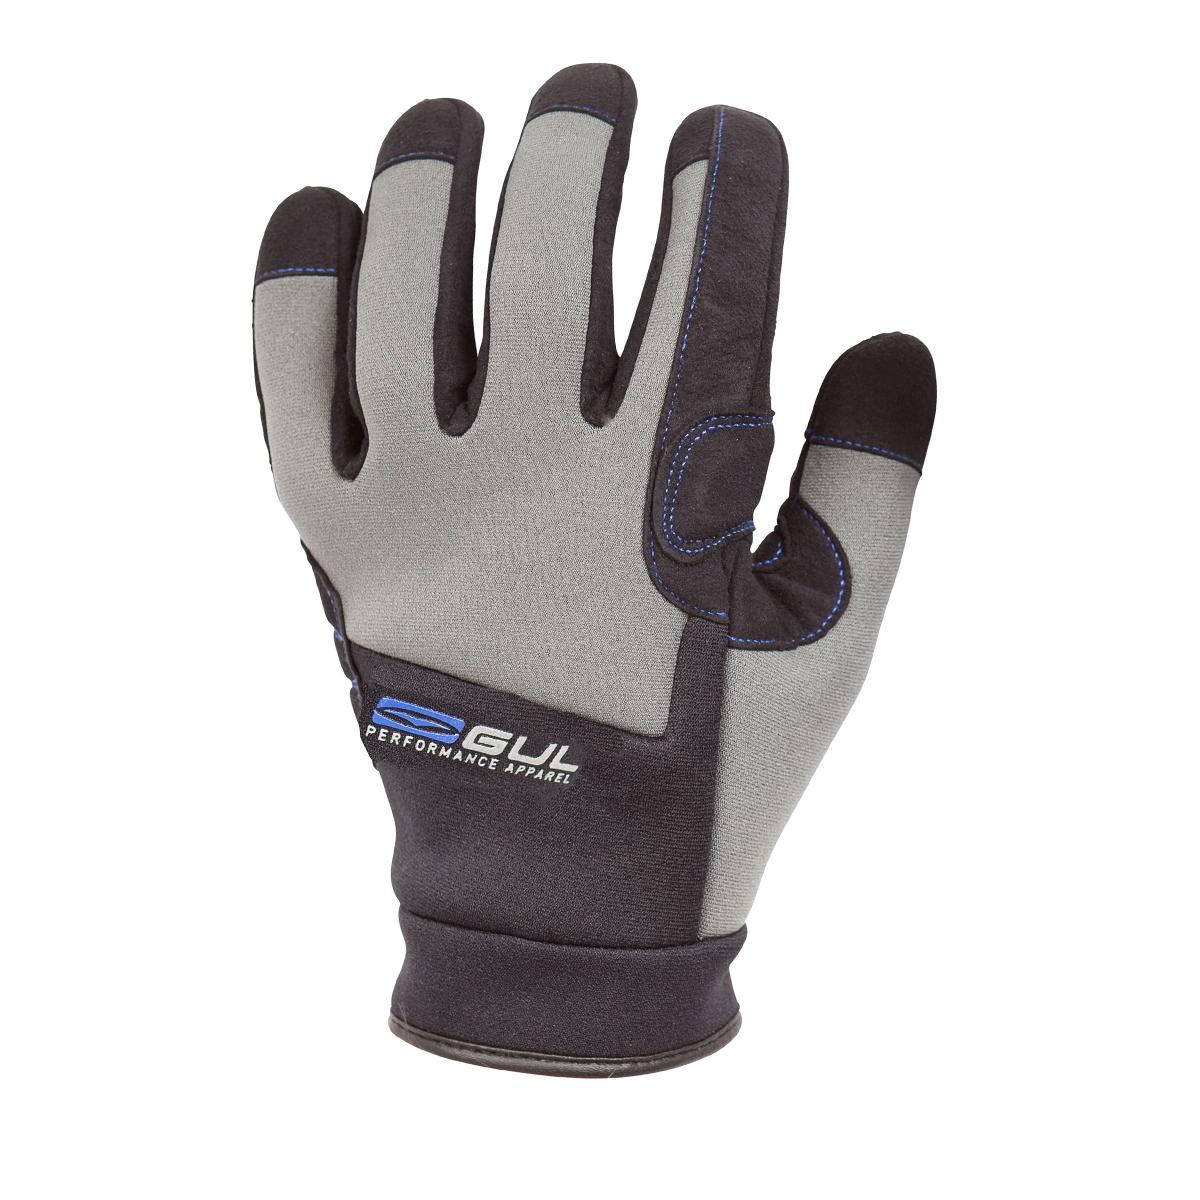 Gul Neoprene Full Finger Winter Sailing Glove   Gl1238-A3